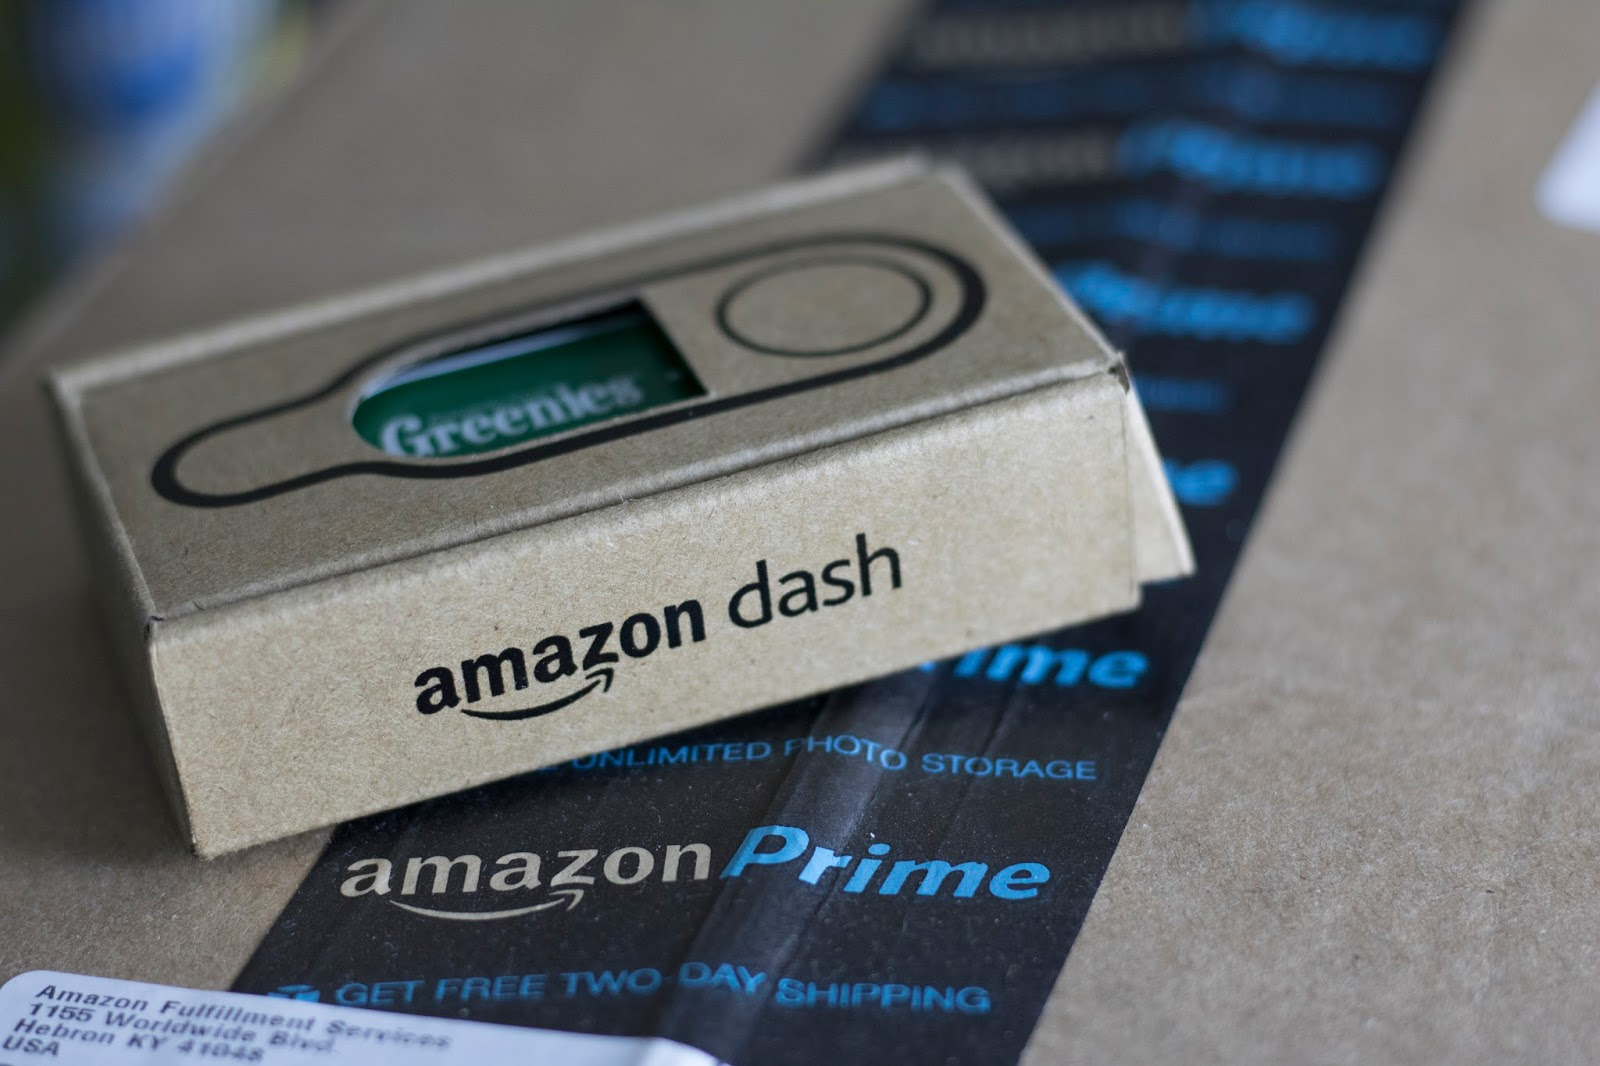 All Things Lauren Amazon Dash Button How To Set It Up